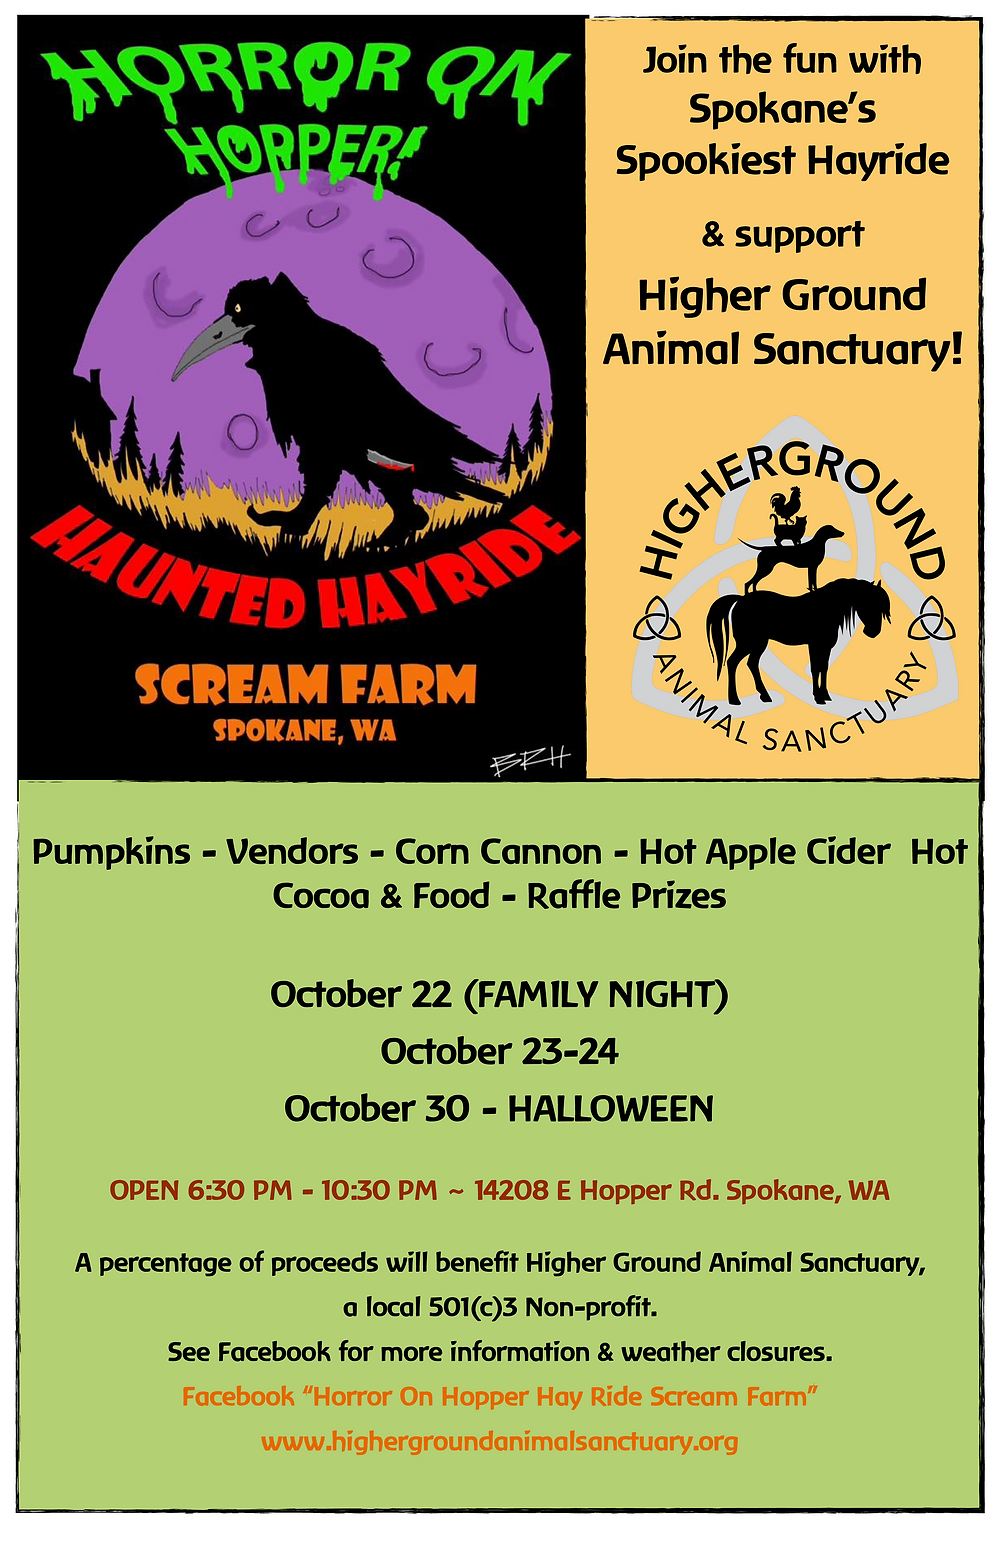 A portion of proceeds for this event will benefit Higher Ground Animal Sanctuary